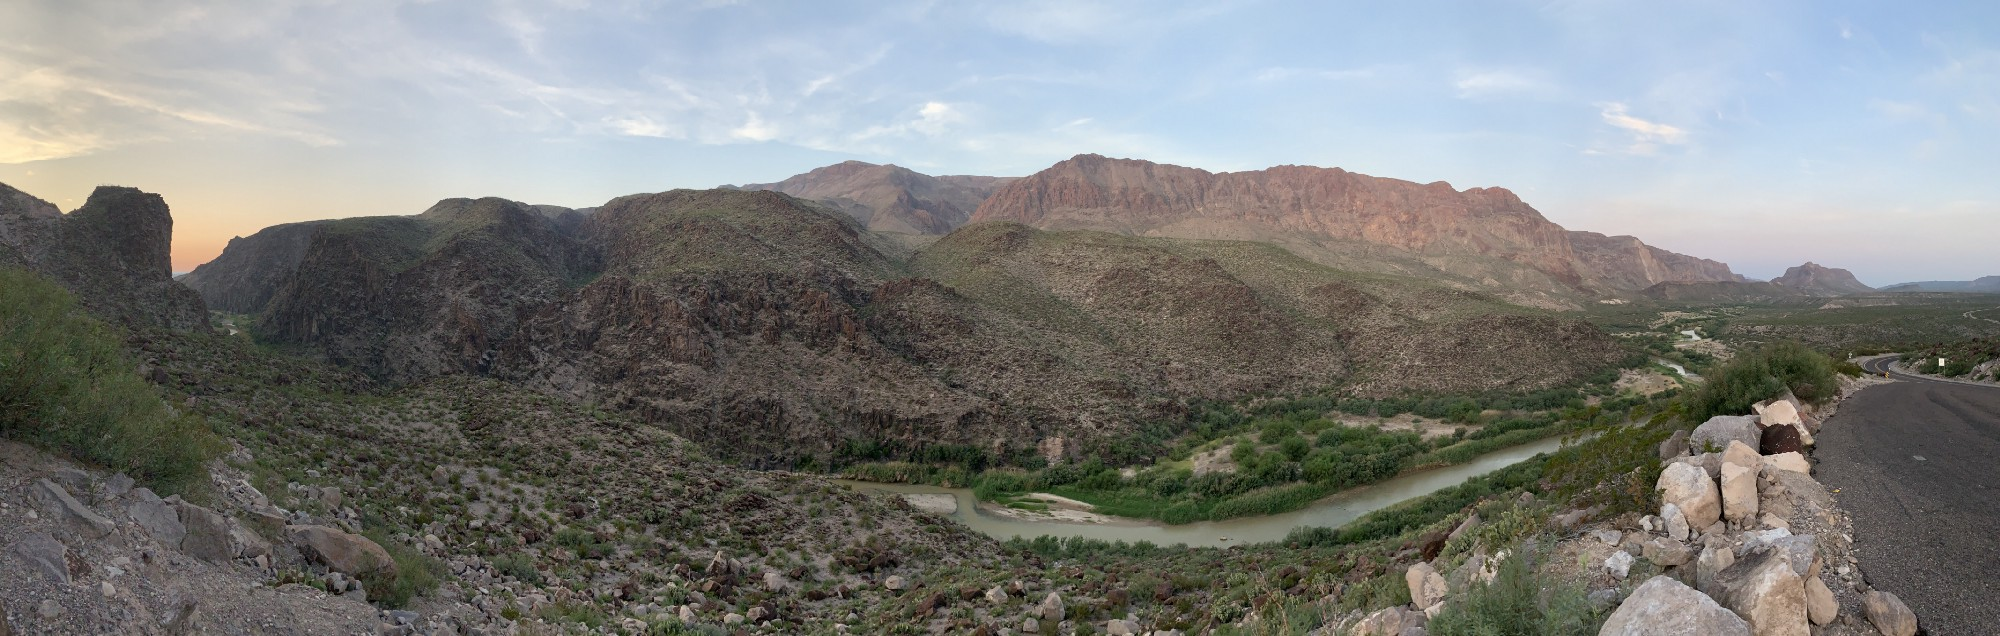 FM 170 on the border of US/Mexico